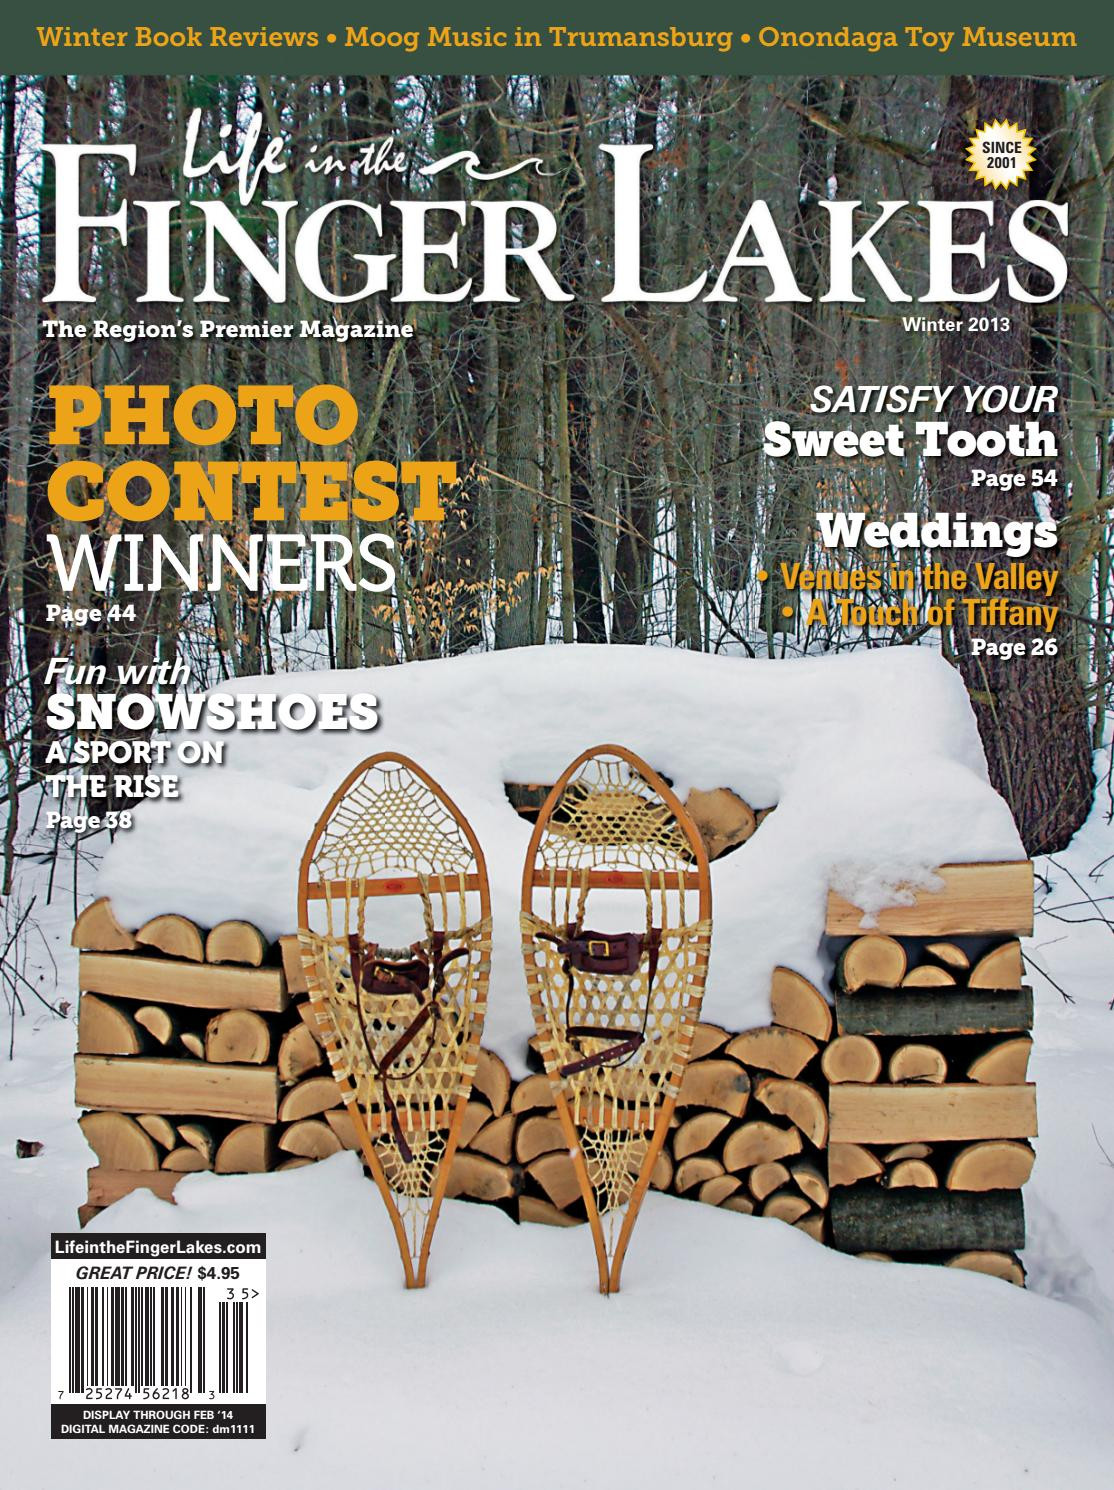 dm hardwood floors of life in the finger lakes winter 2013 by fahy williams publishing issuu with page 1